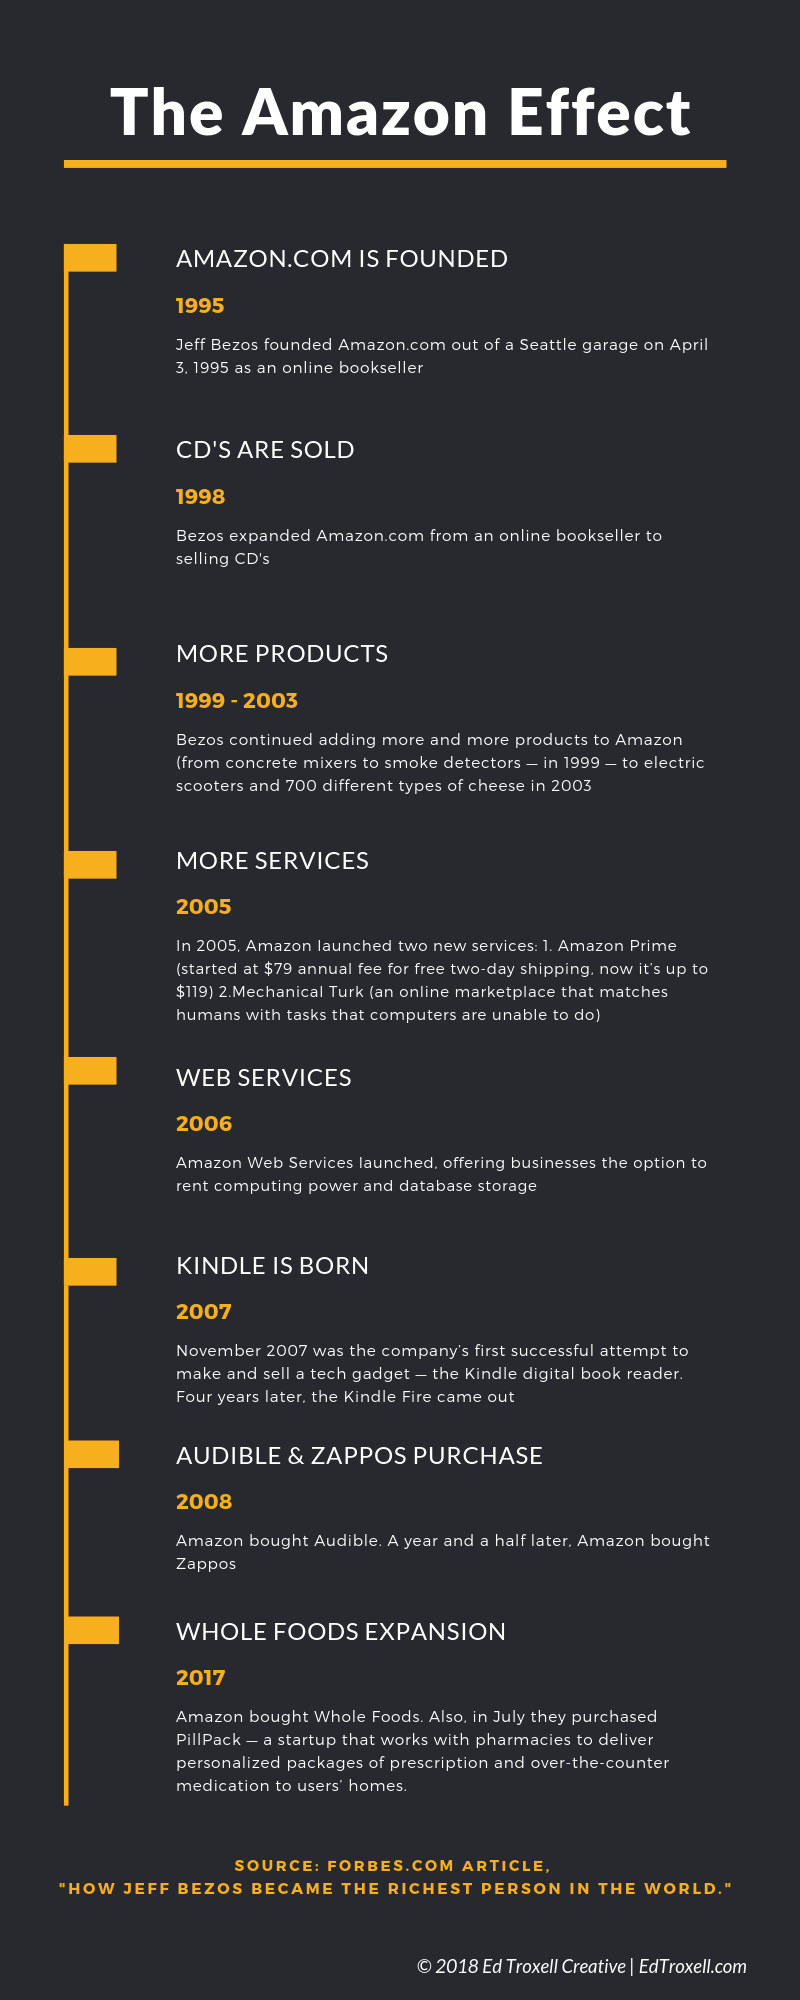 How Amazon has grown its business over the years